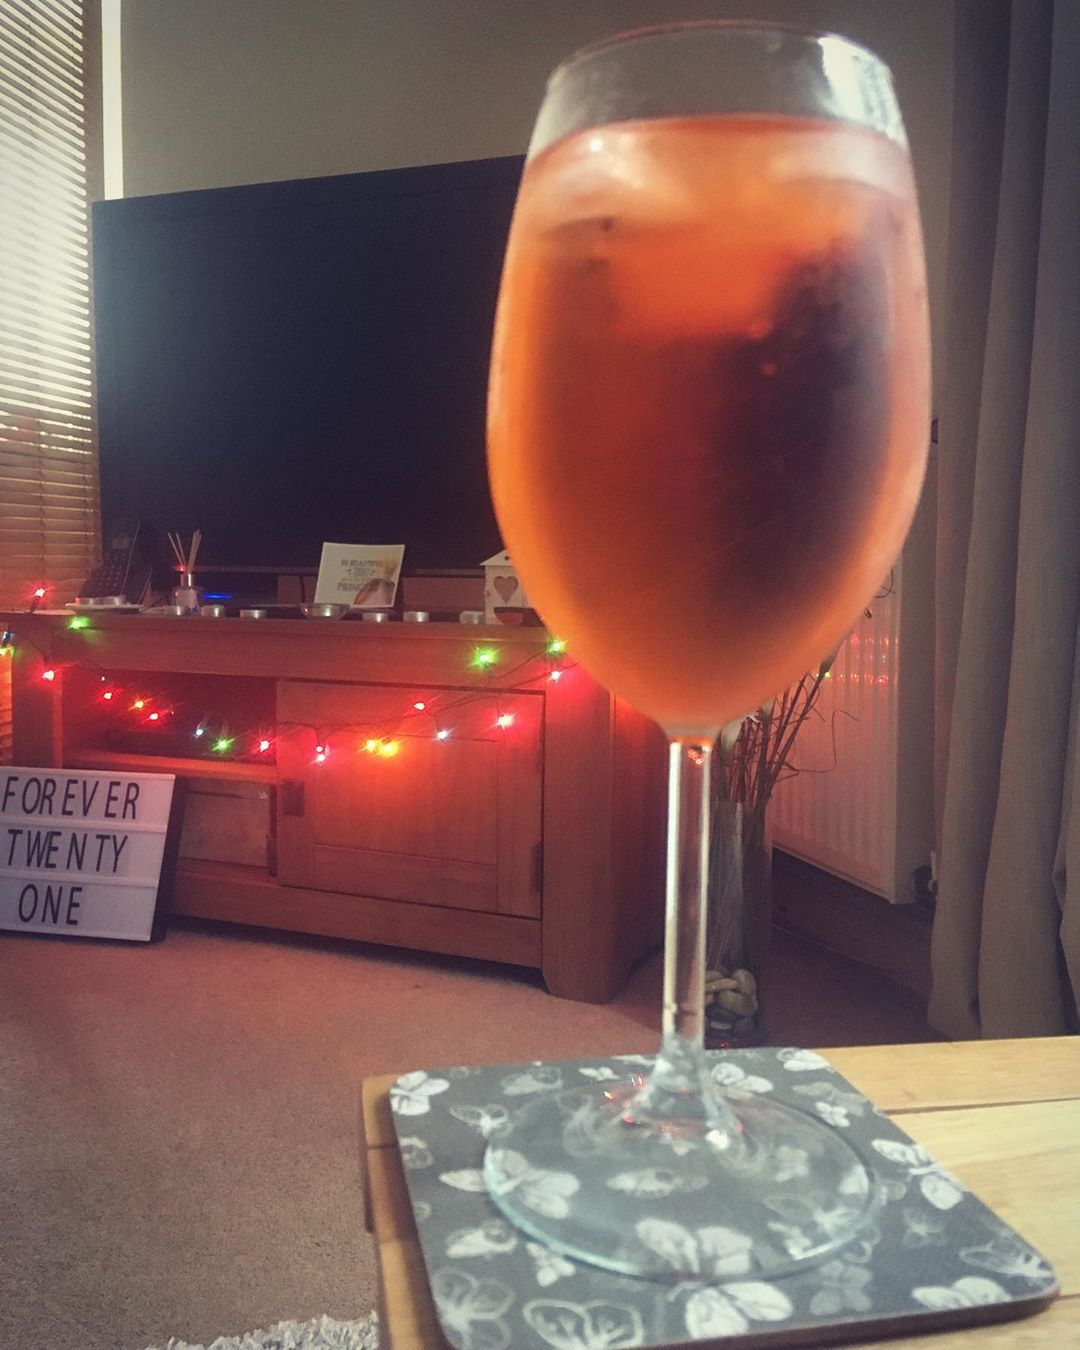 Pictame Webstagram Instagram Post By Claire802x Because When The First Day In Your New Job Goes Well You Deserv Aperol Spritz Cocktail Lover Spritz